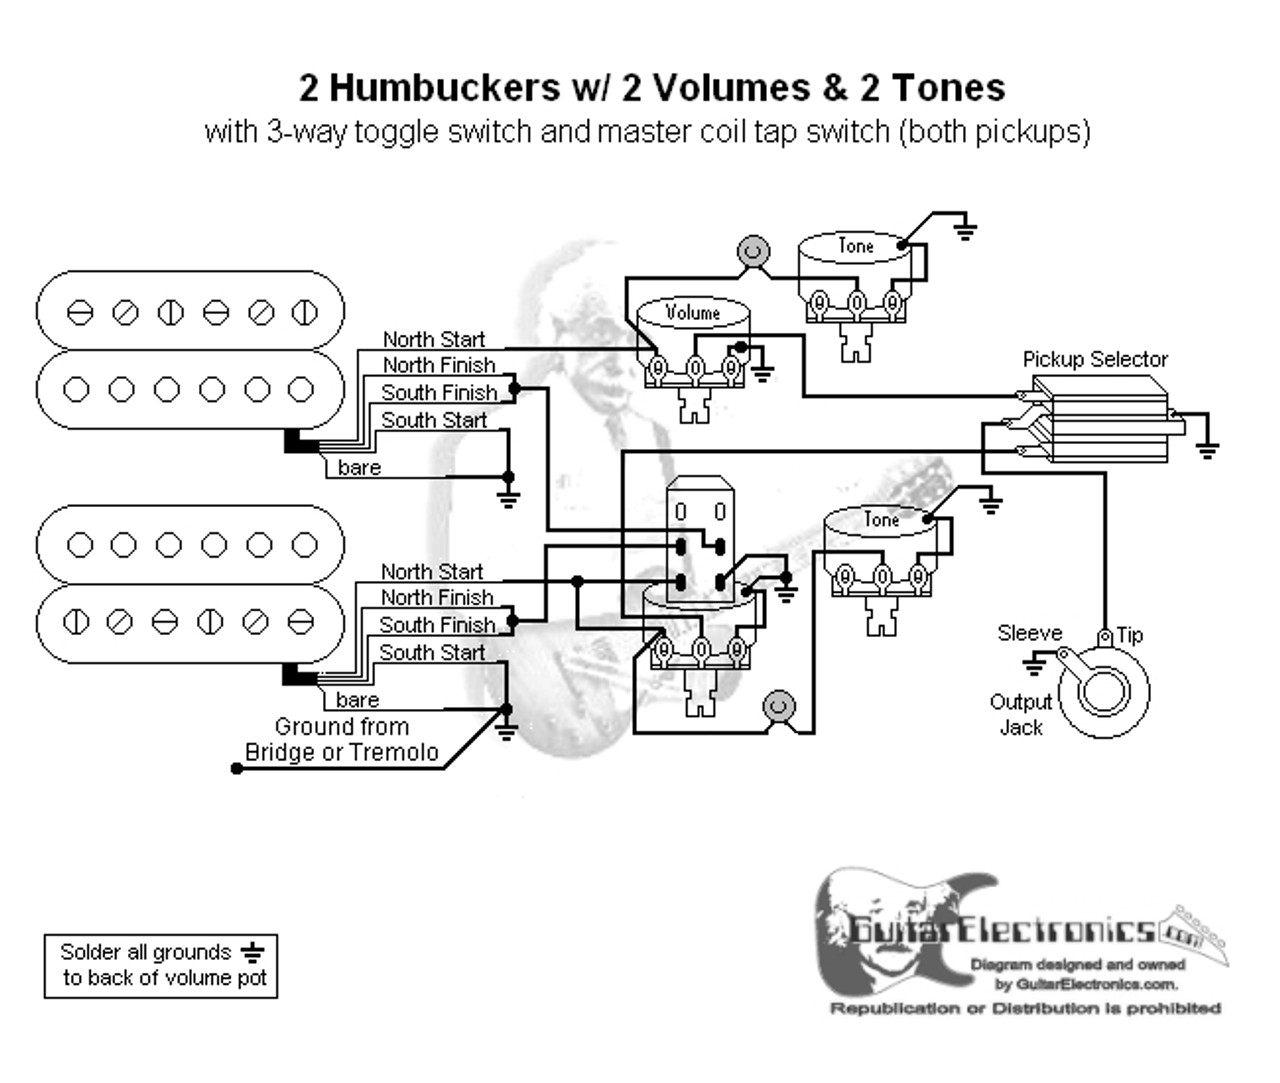 small resolution of 2 humbuckers 3 way toggle switch 2 volumes 2 tones coil tapwd2hh3t22 01 91616 1470694434 jpg c